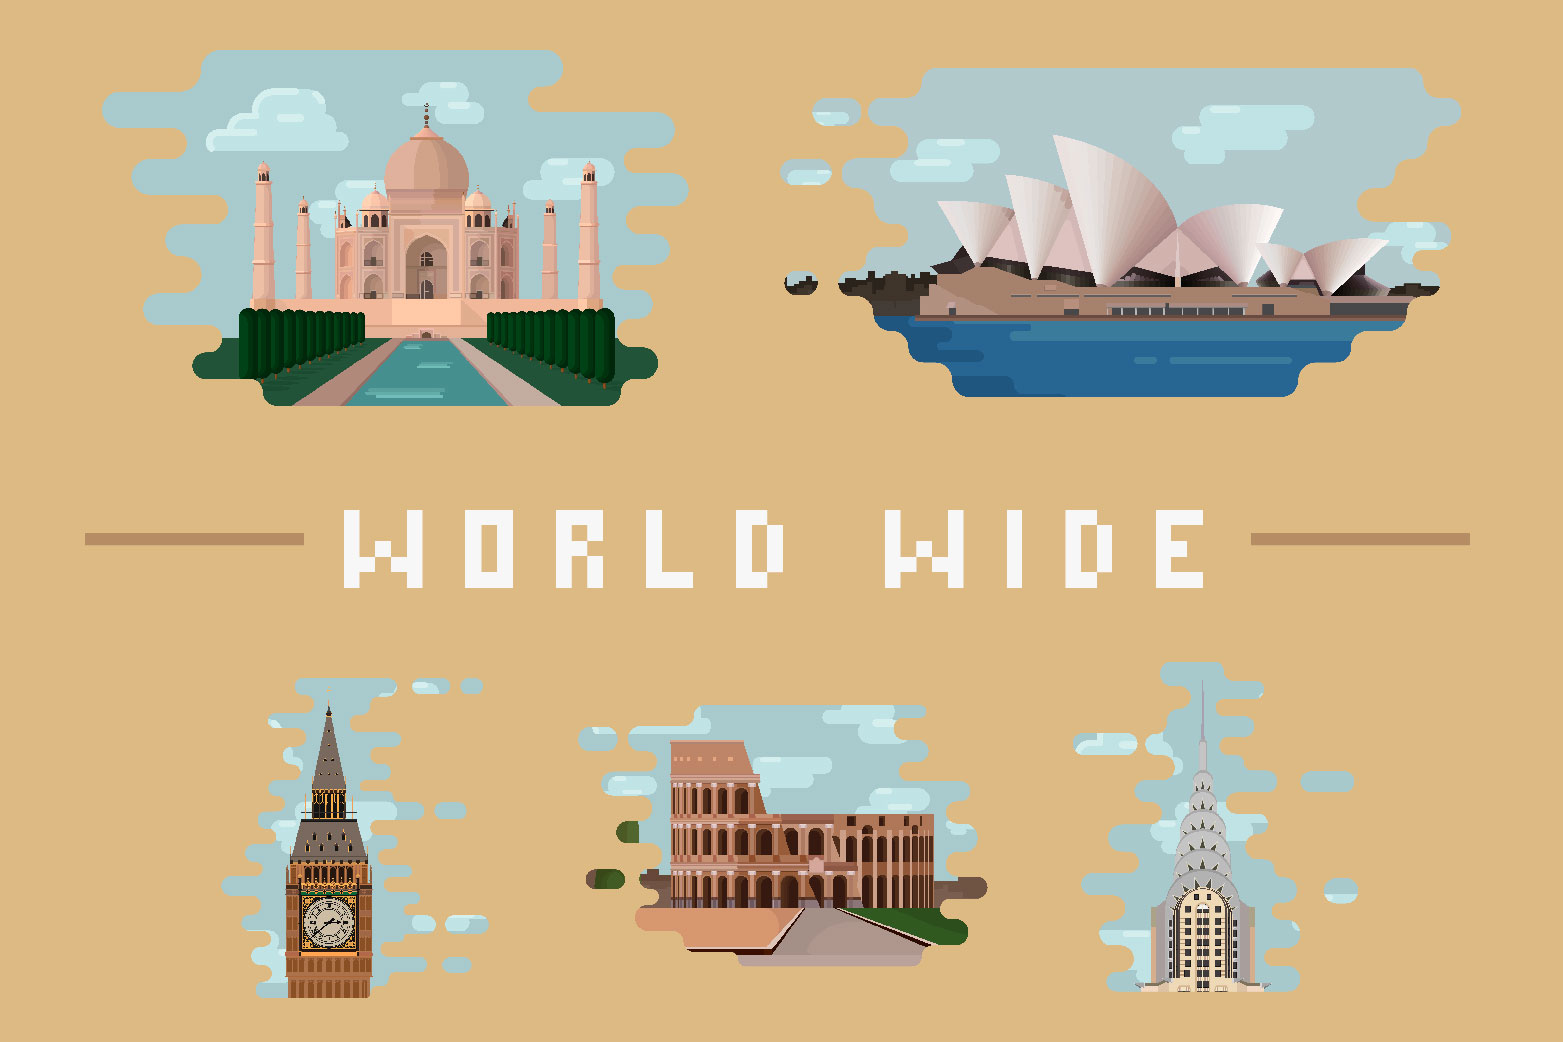 Word wide - Architectural landmarks illustrations example image 1